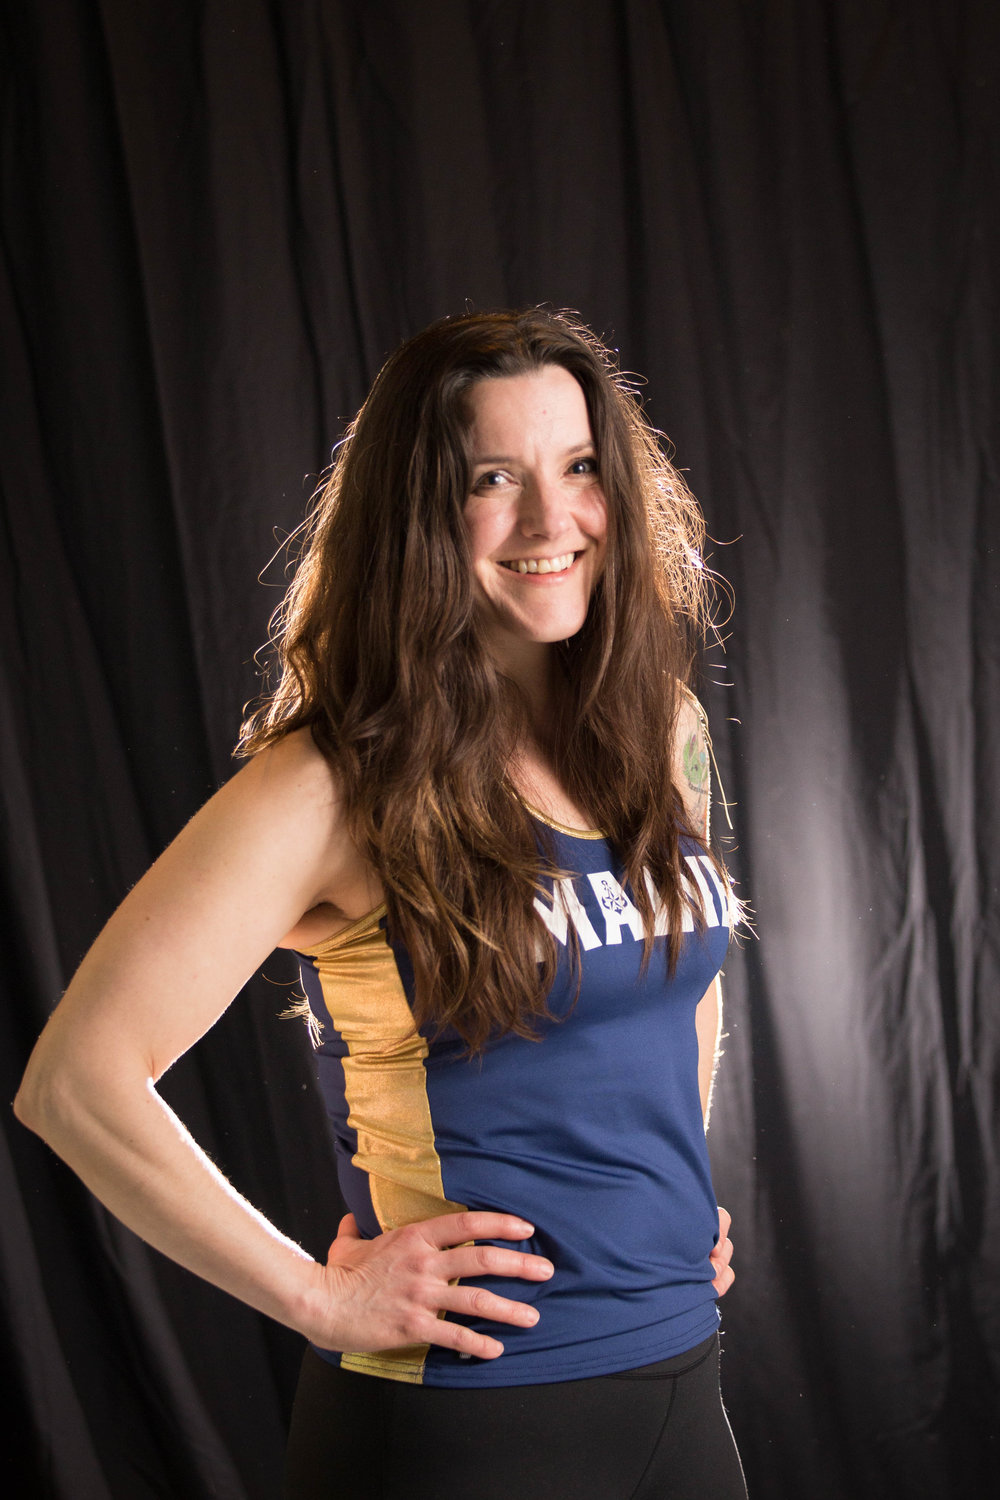 Maine Roller Derby head shots for MaineRollerDerby.com.  Betty B Tough